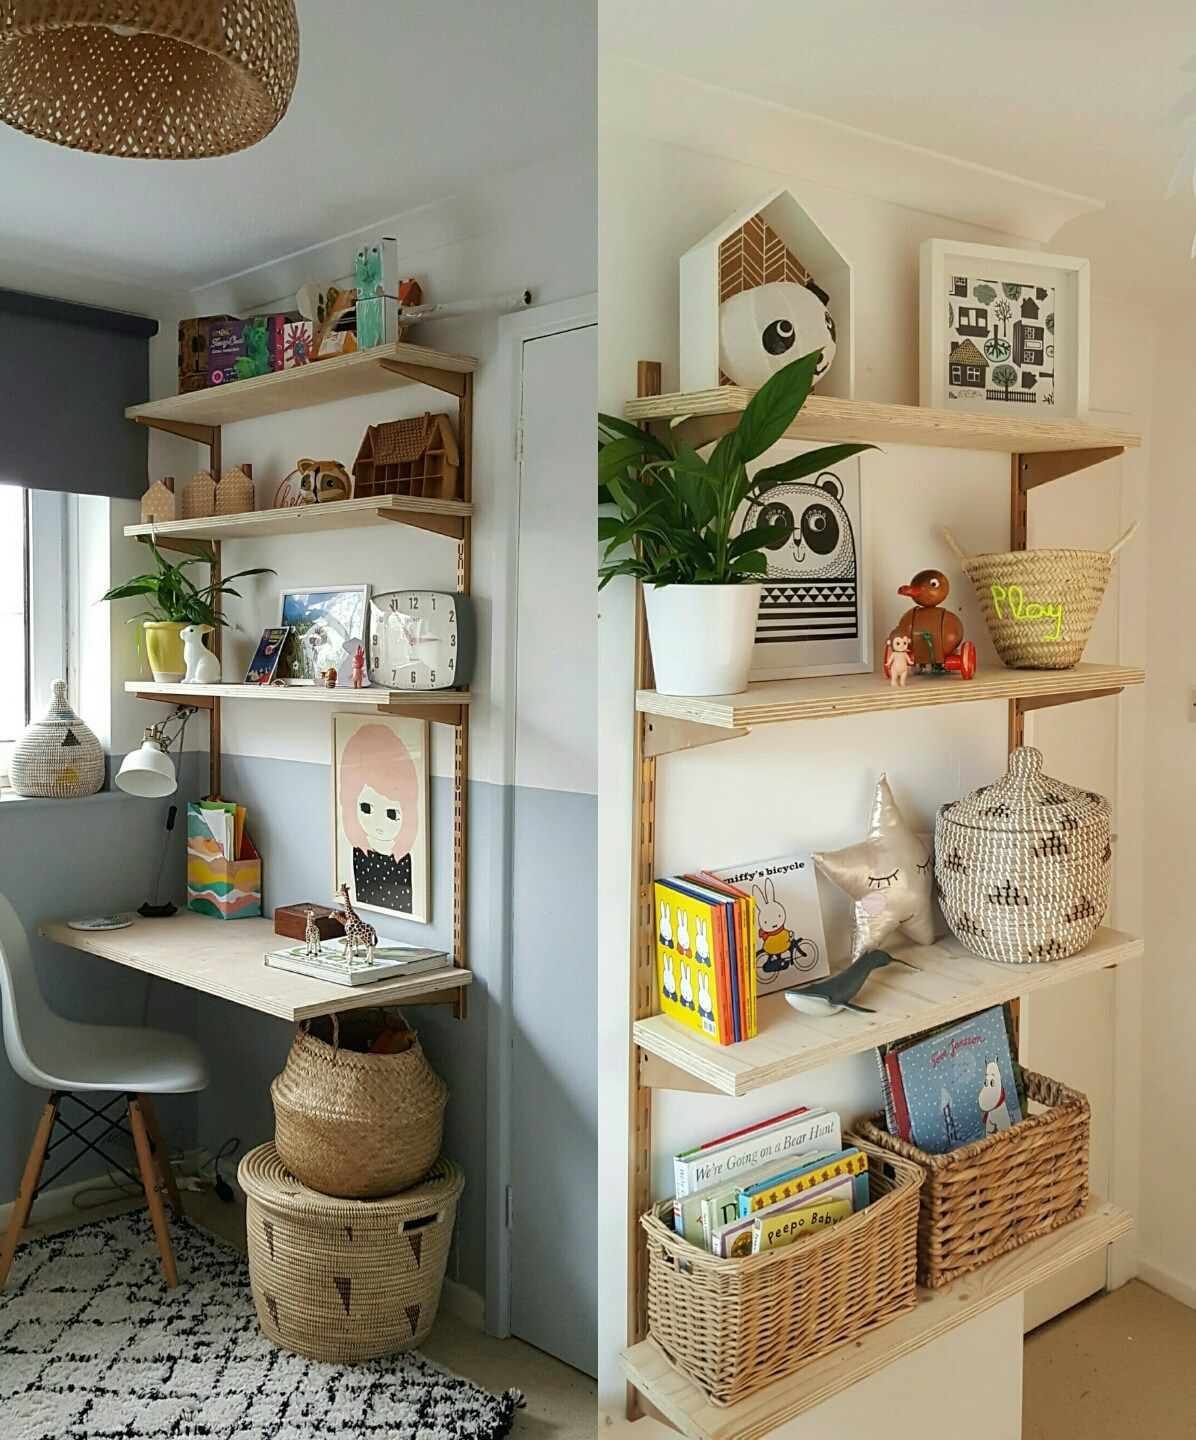 Groovy Quick Easy And Beautiful Twin Slot Shelving Rooms Room Download Free Architecture Designs Scobabritishbridgeorg